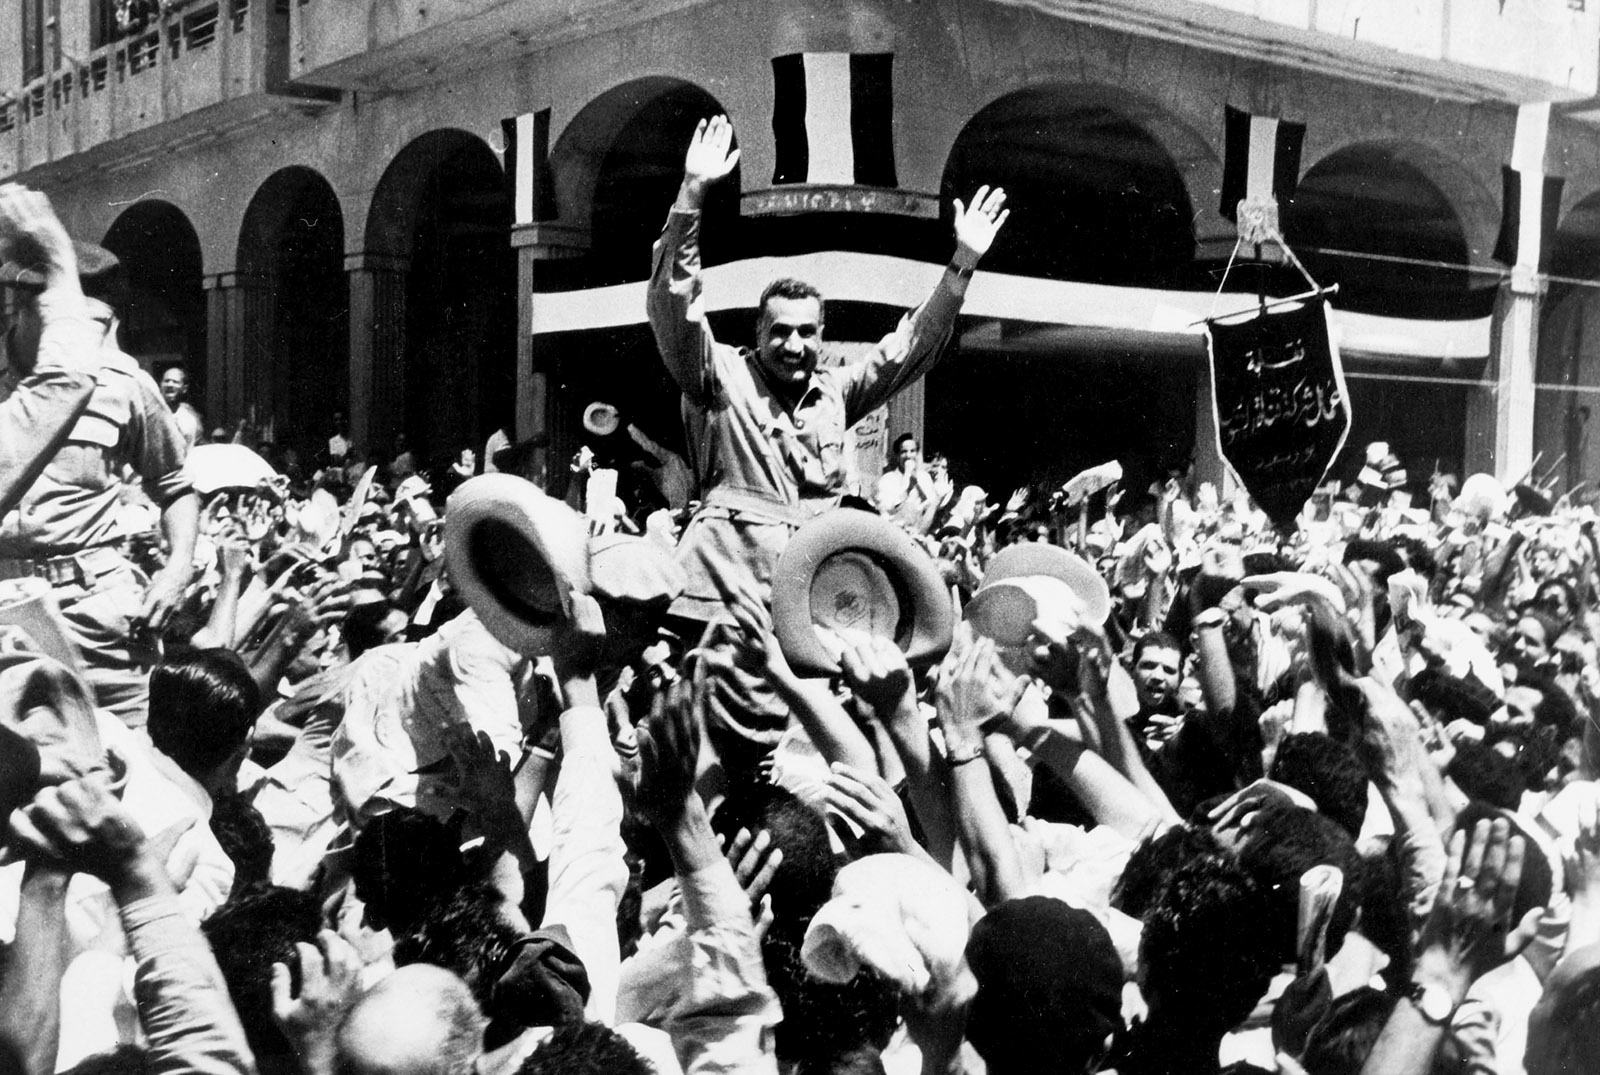 Gamal Abdel Nasser being carried through the streets after the British evacuation from the Suez Canal, Port Said, Egypt, 1956